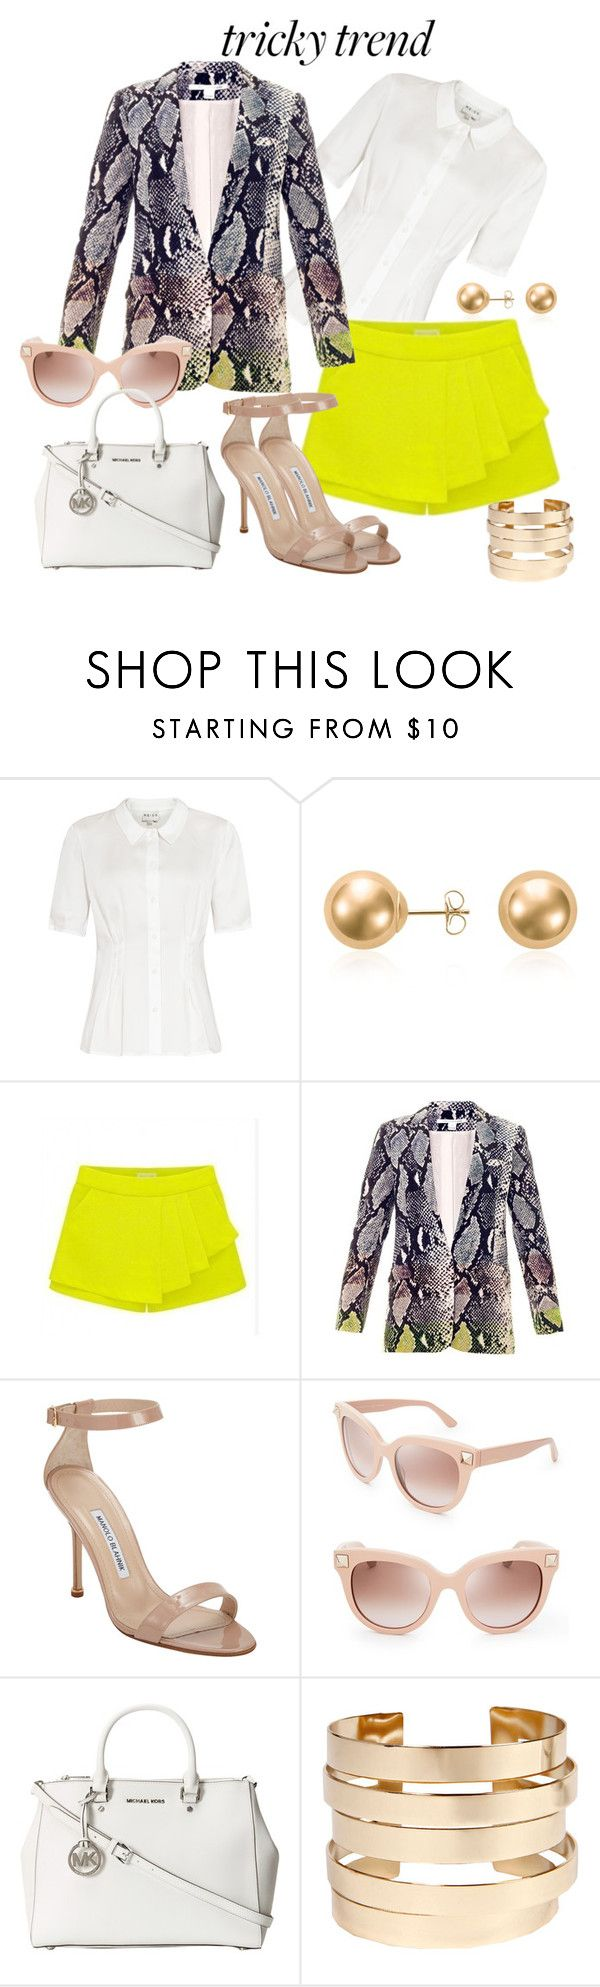 """Tricky trend"" by florete ❤ liked on Polyvore featuring Reiss, Blue Nile, Diane Von Furstenberg, Manolo Blahnik, Valentino, MICHAEL Michael Kors and Boohoo"